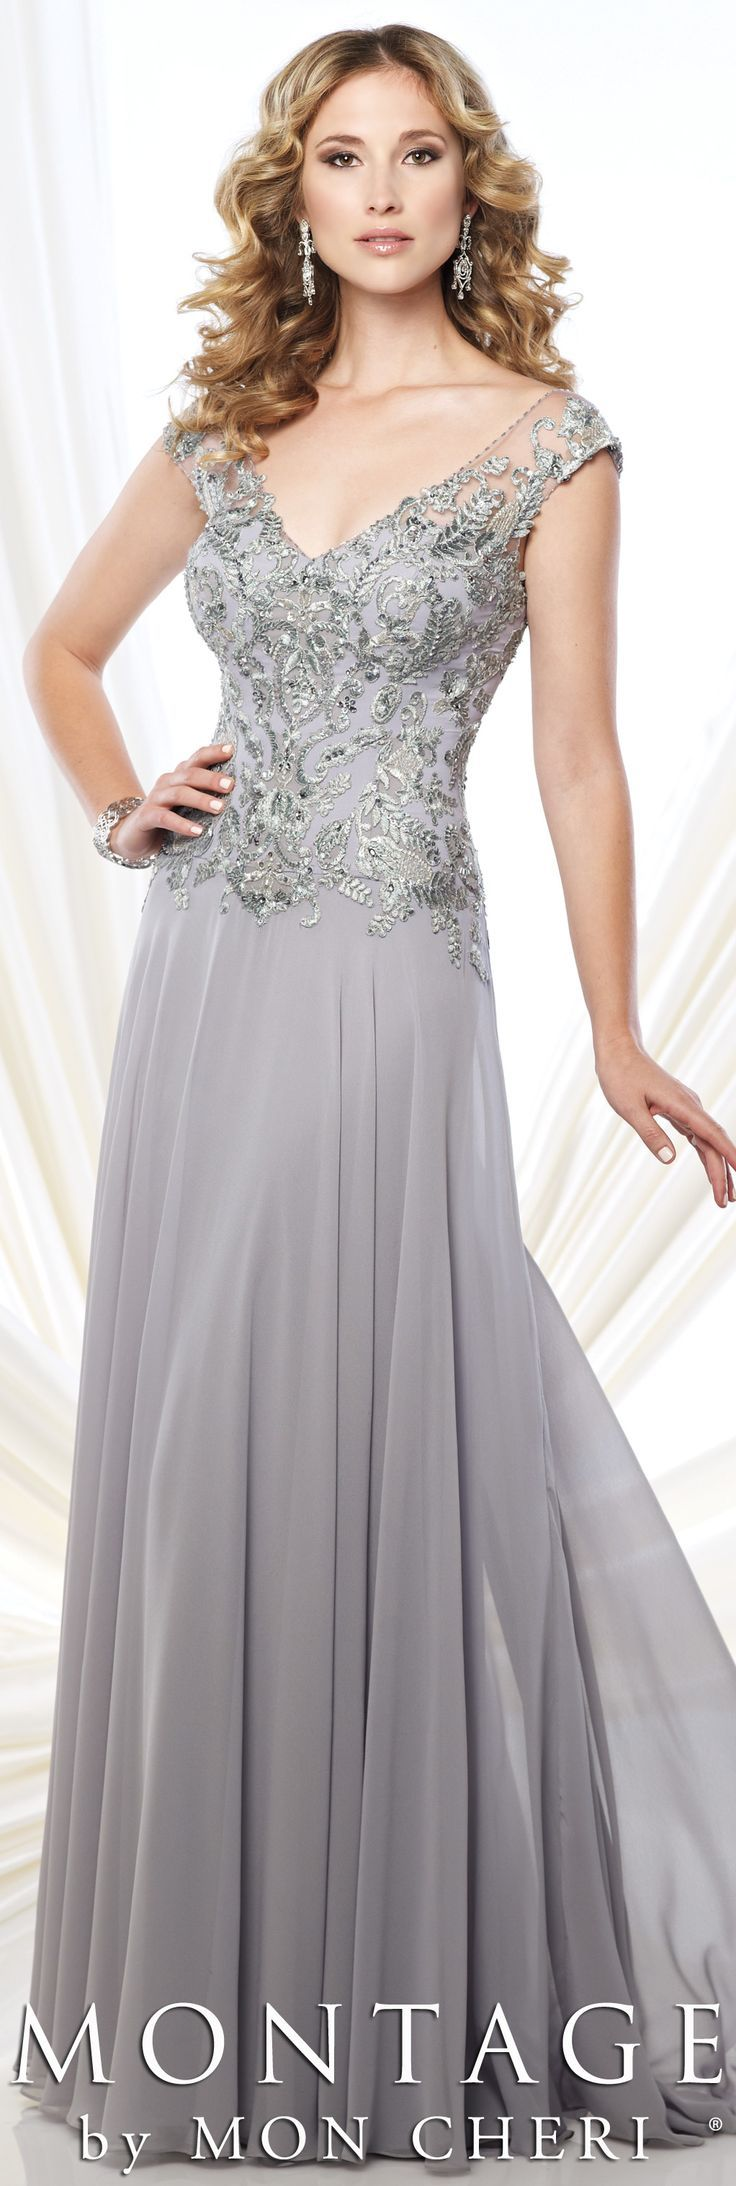 Sophisticated mother of the bride dresses by mon cheri fall